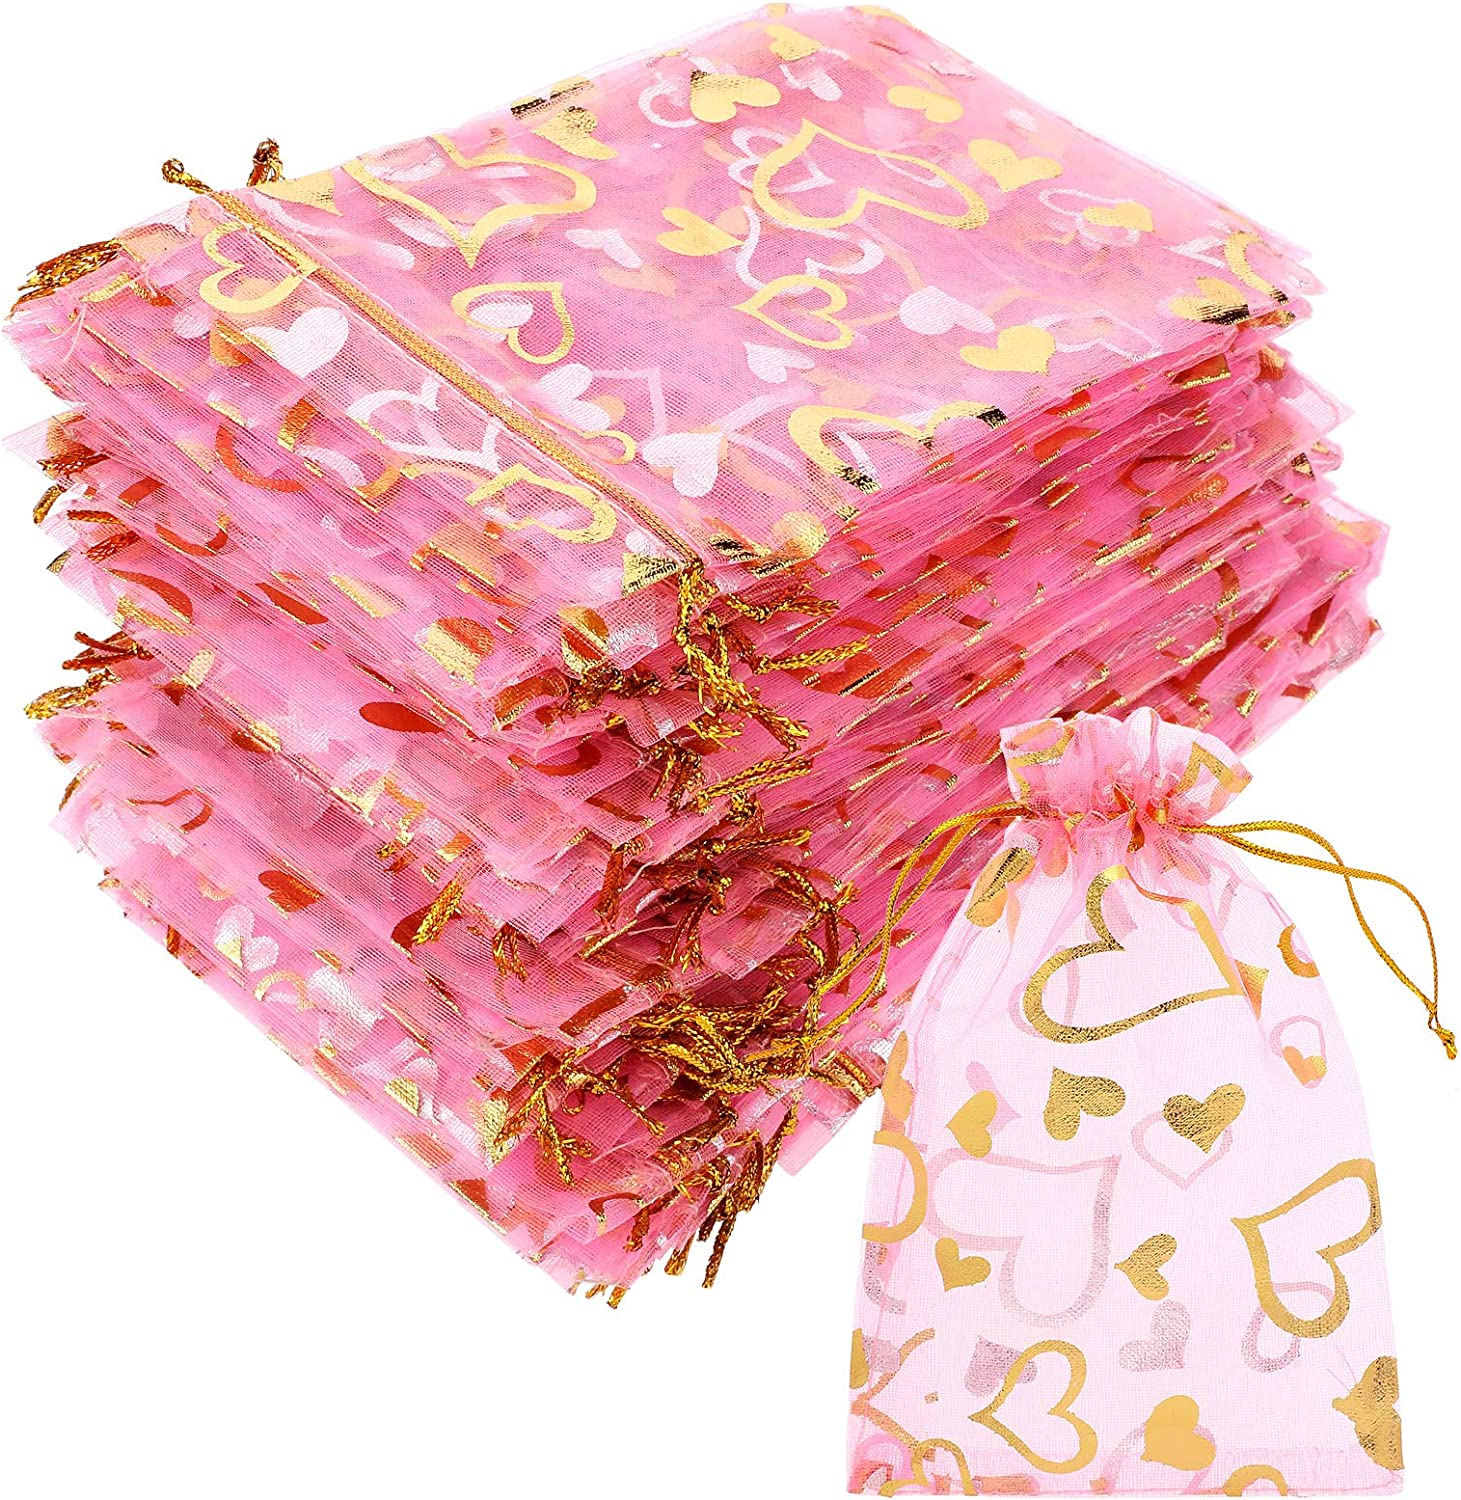 100 Pieces 4 x 6 Inch Denver Mall Valentine's Day Organza Heart discount Sheer D Bags